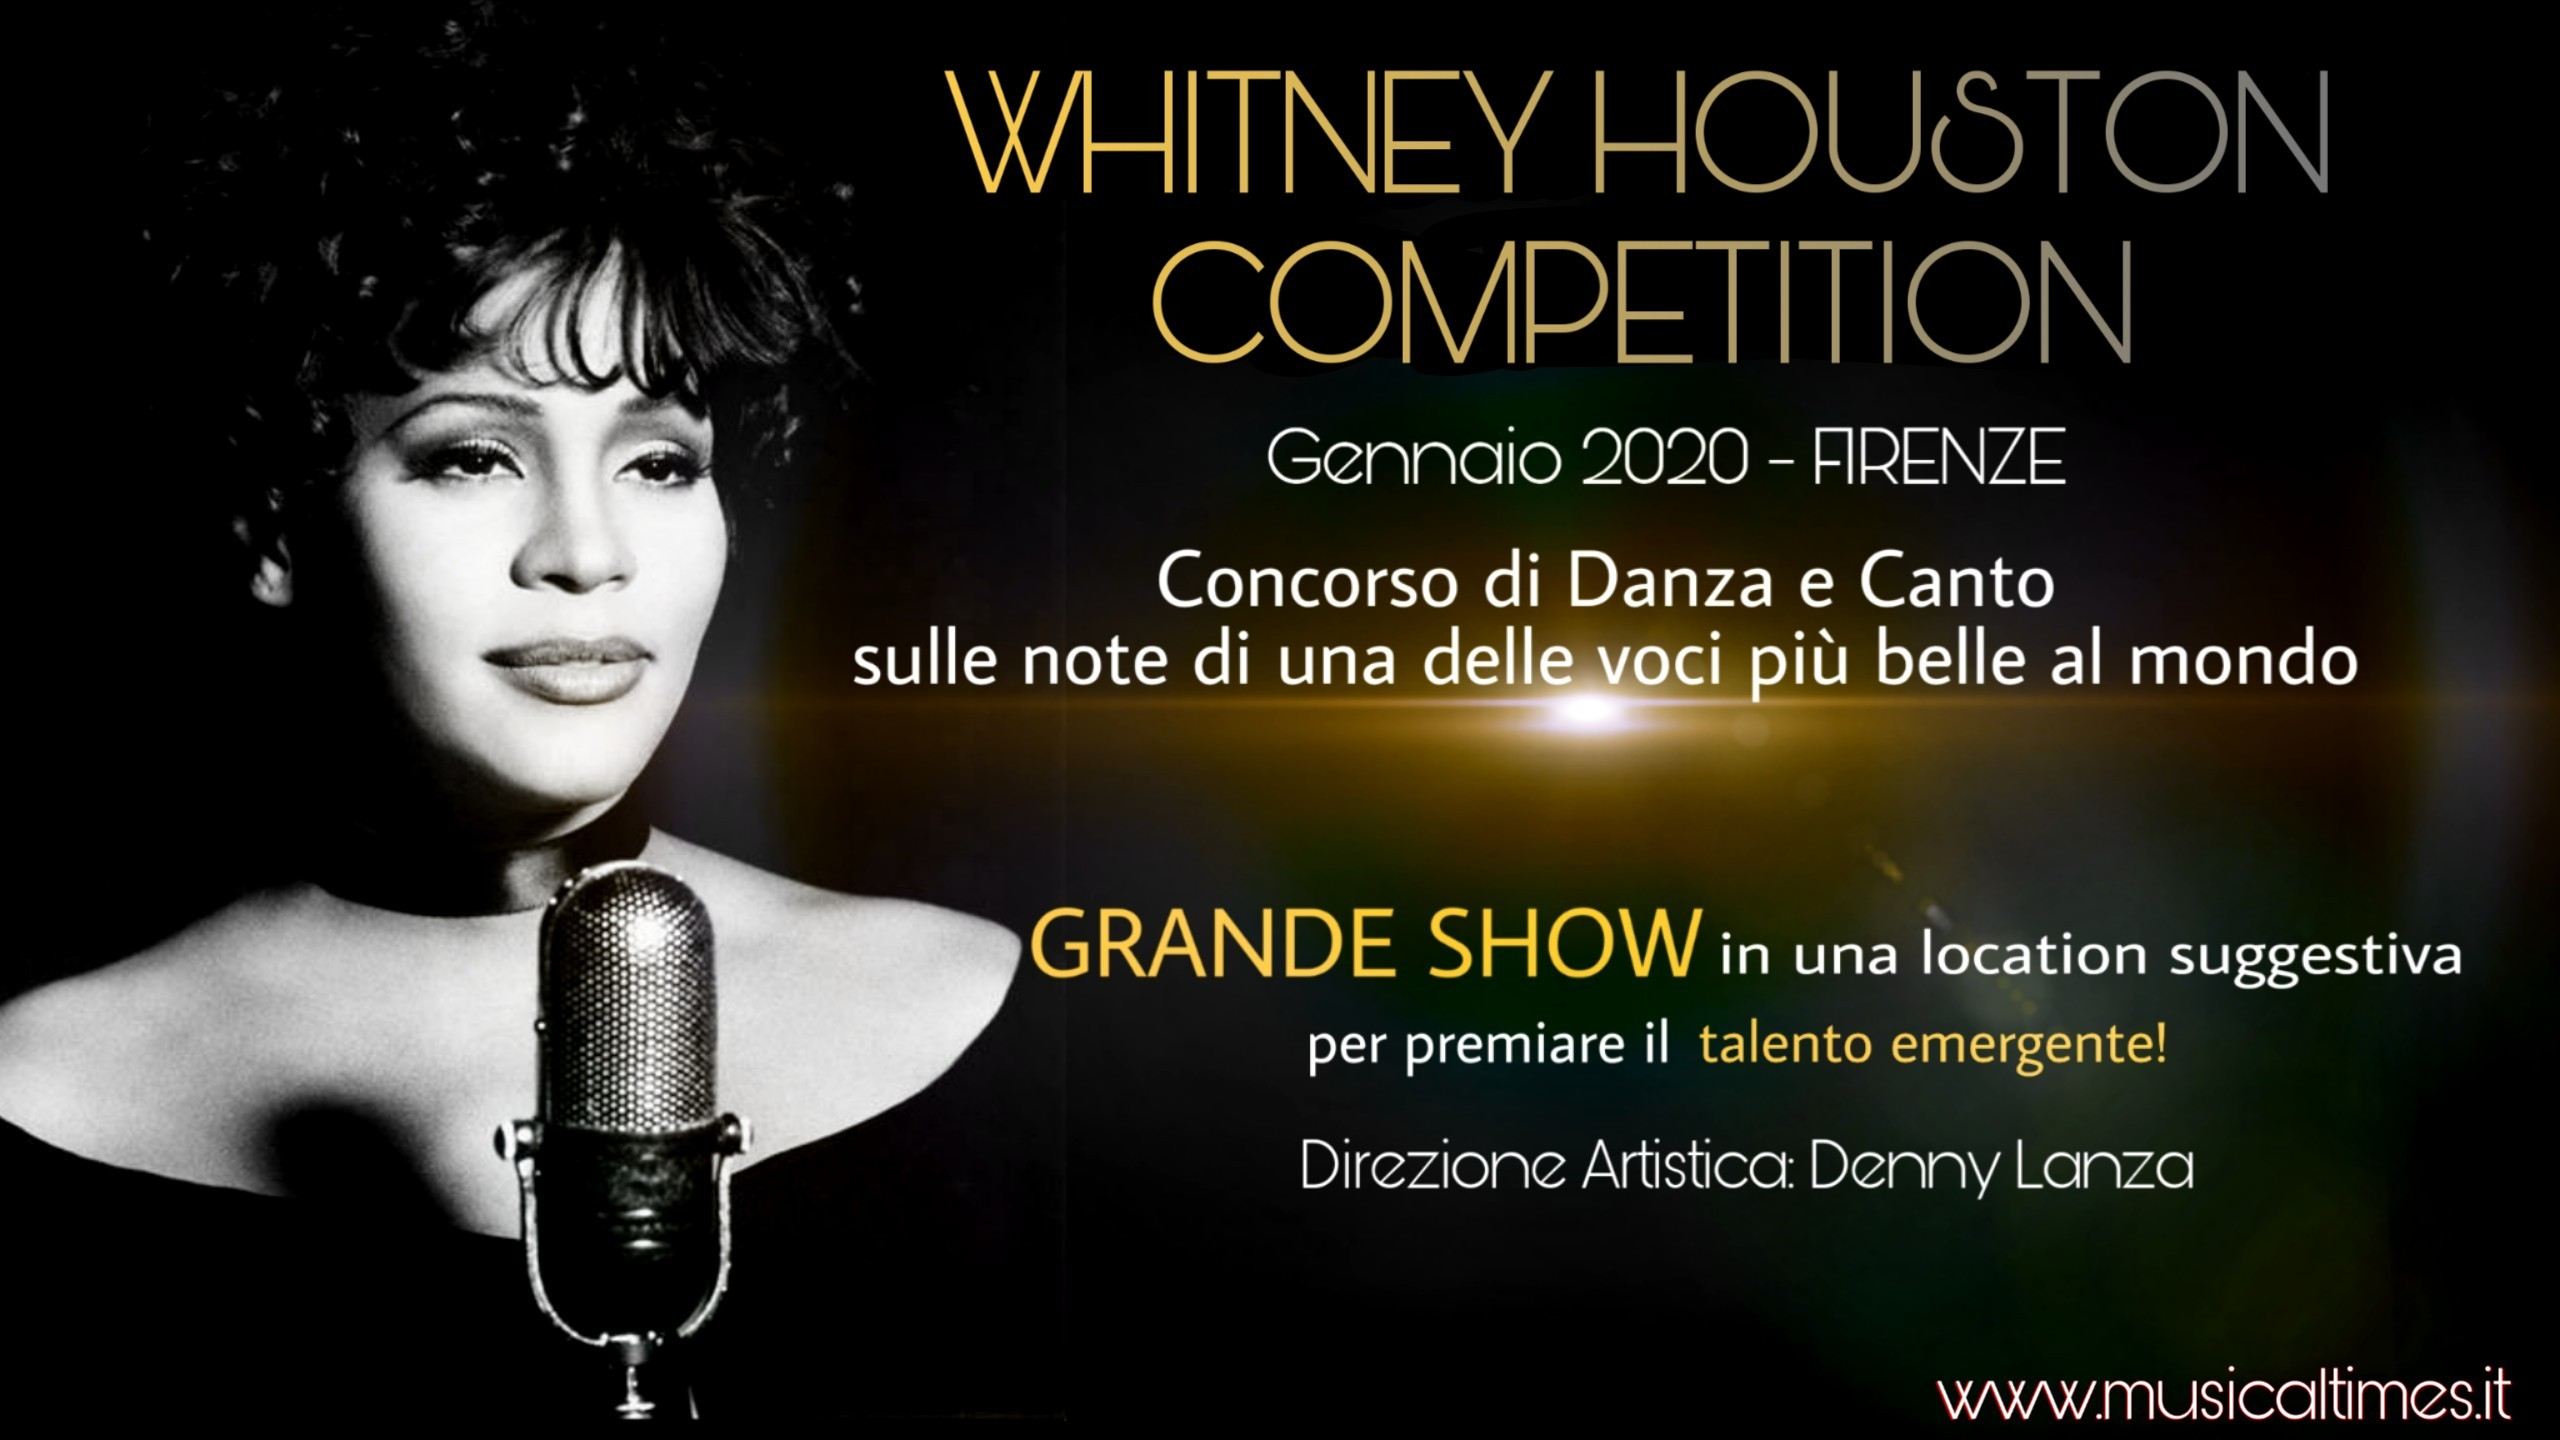 WHITNEY HOUSTON COMPETITION